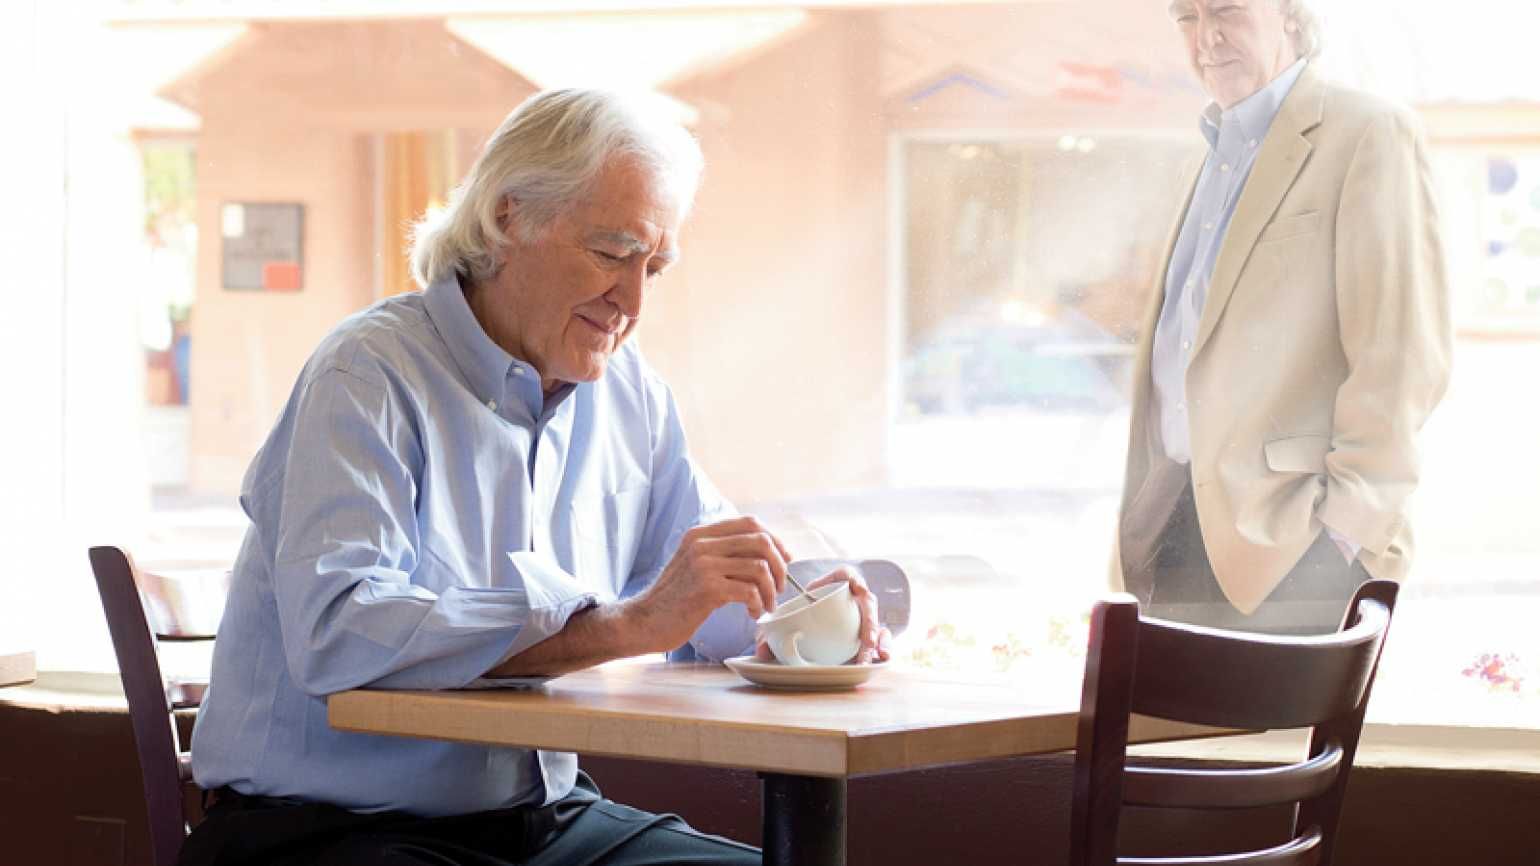 Dr. Larry Dossey gazes through a window at himself, seated in a cafe.